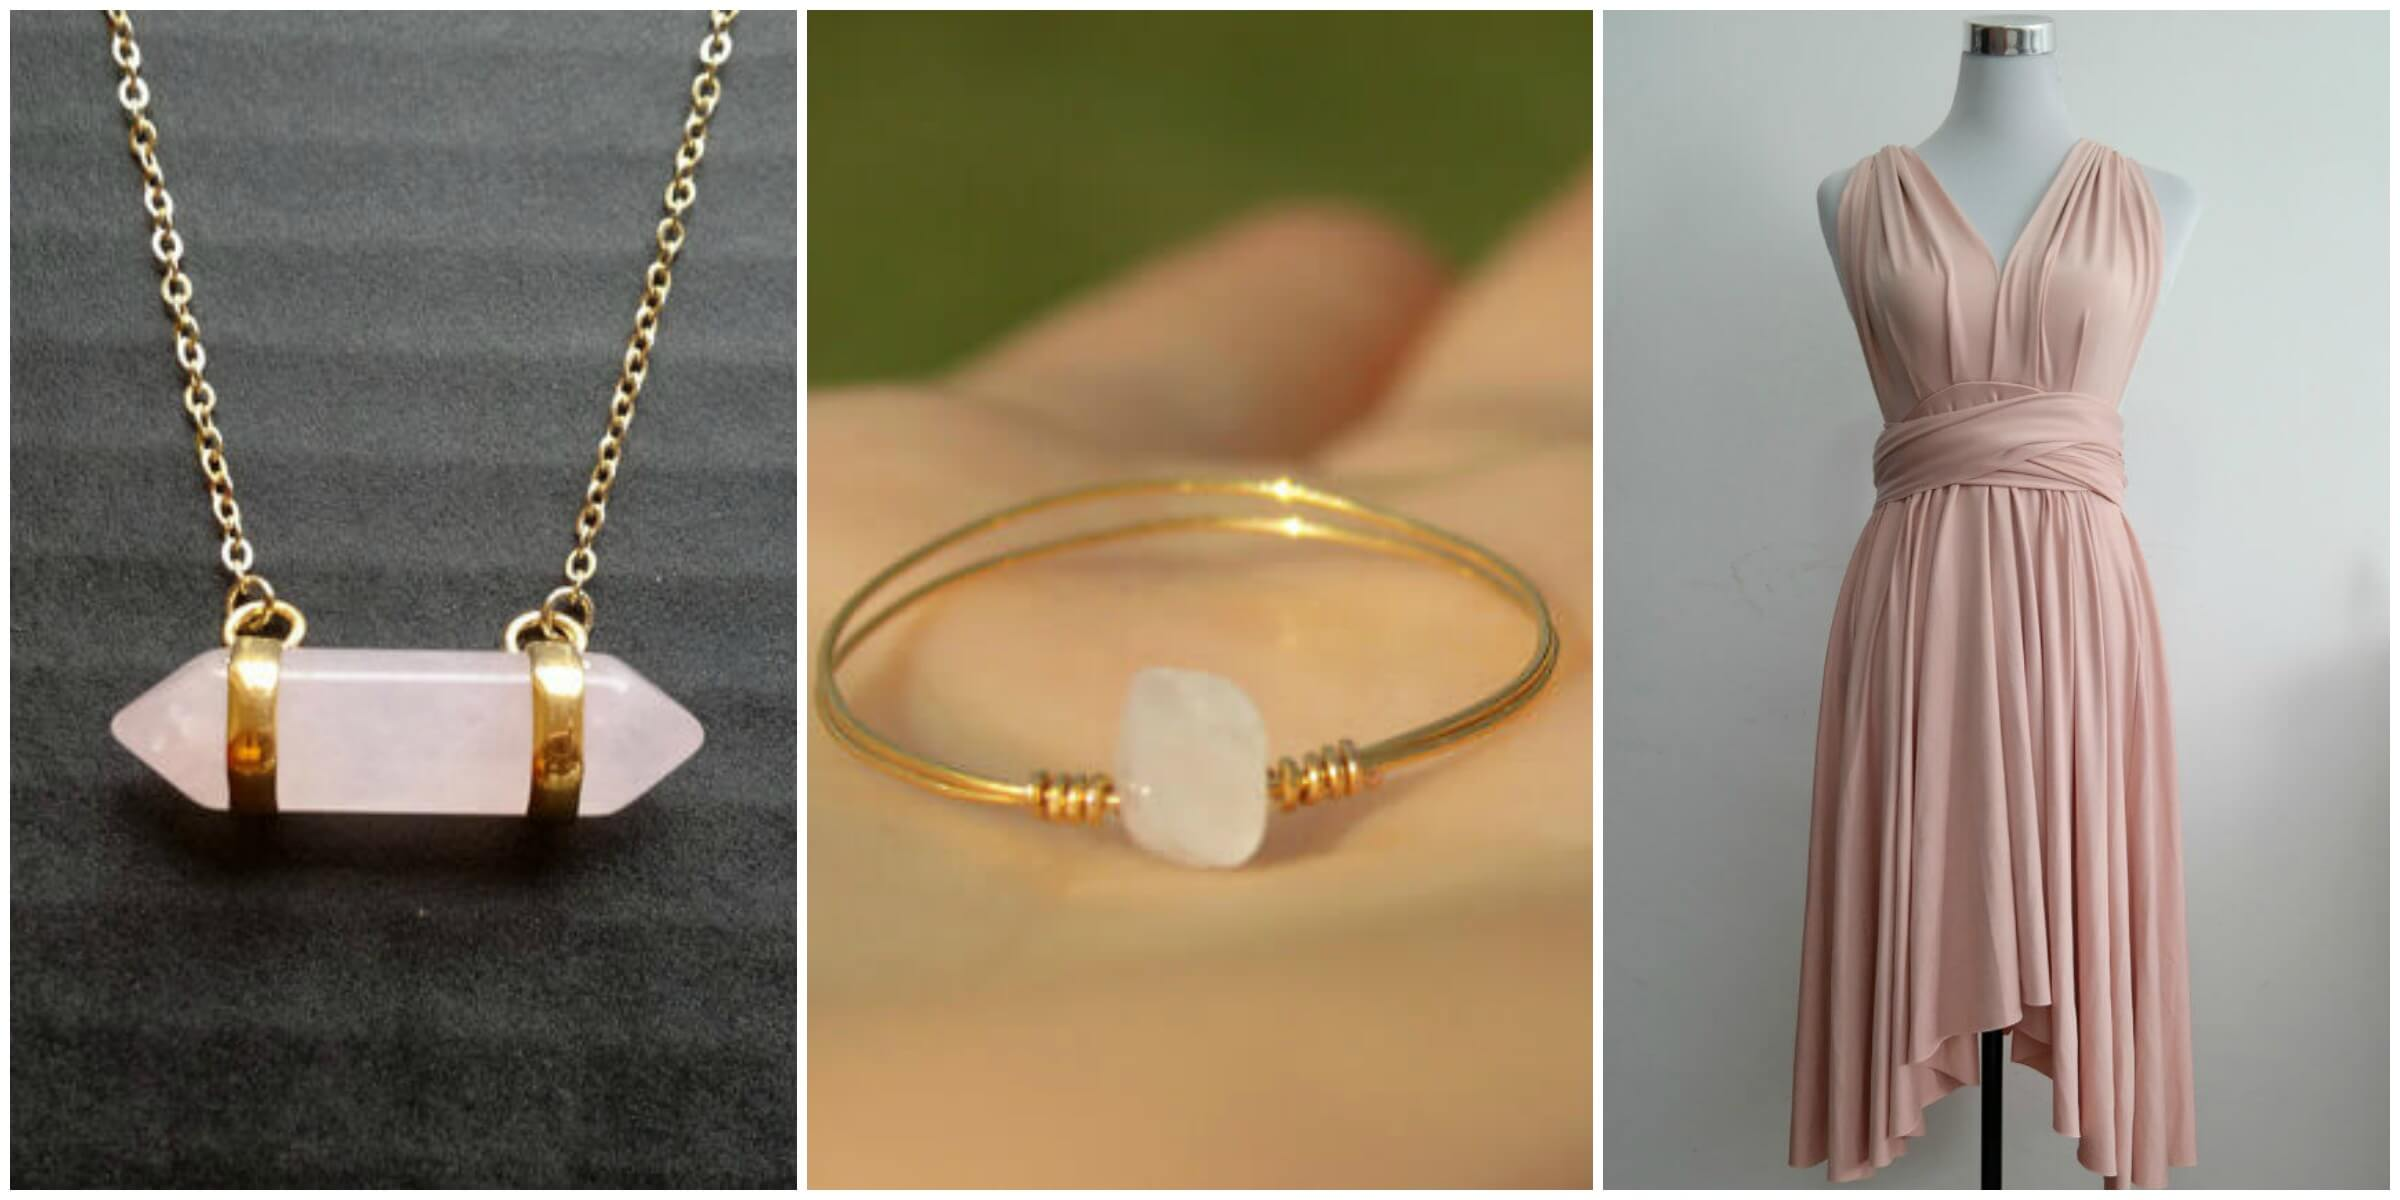 Rose Quartz necklace by Sinus Finnicus on Etsy; Dainty Rose Quartz Ring via the Purple Rosebud on Etsy; Knee Length Convertible Infinity Multi Wrap Dress via LilZoo on Etsy